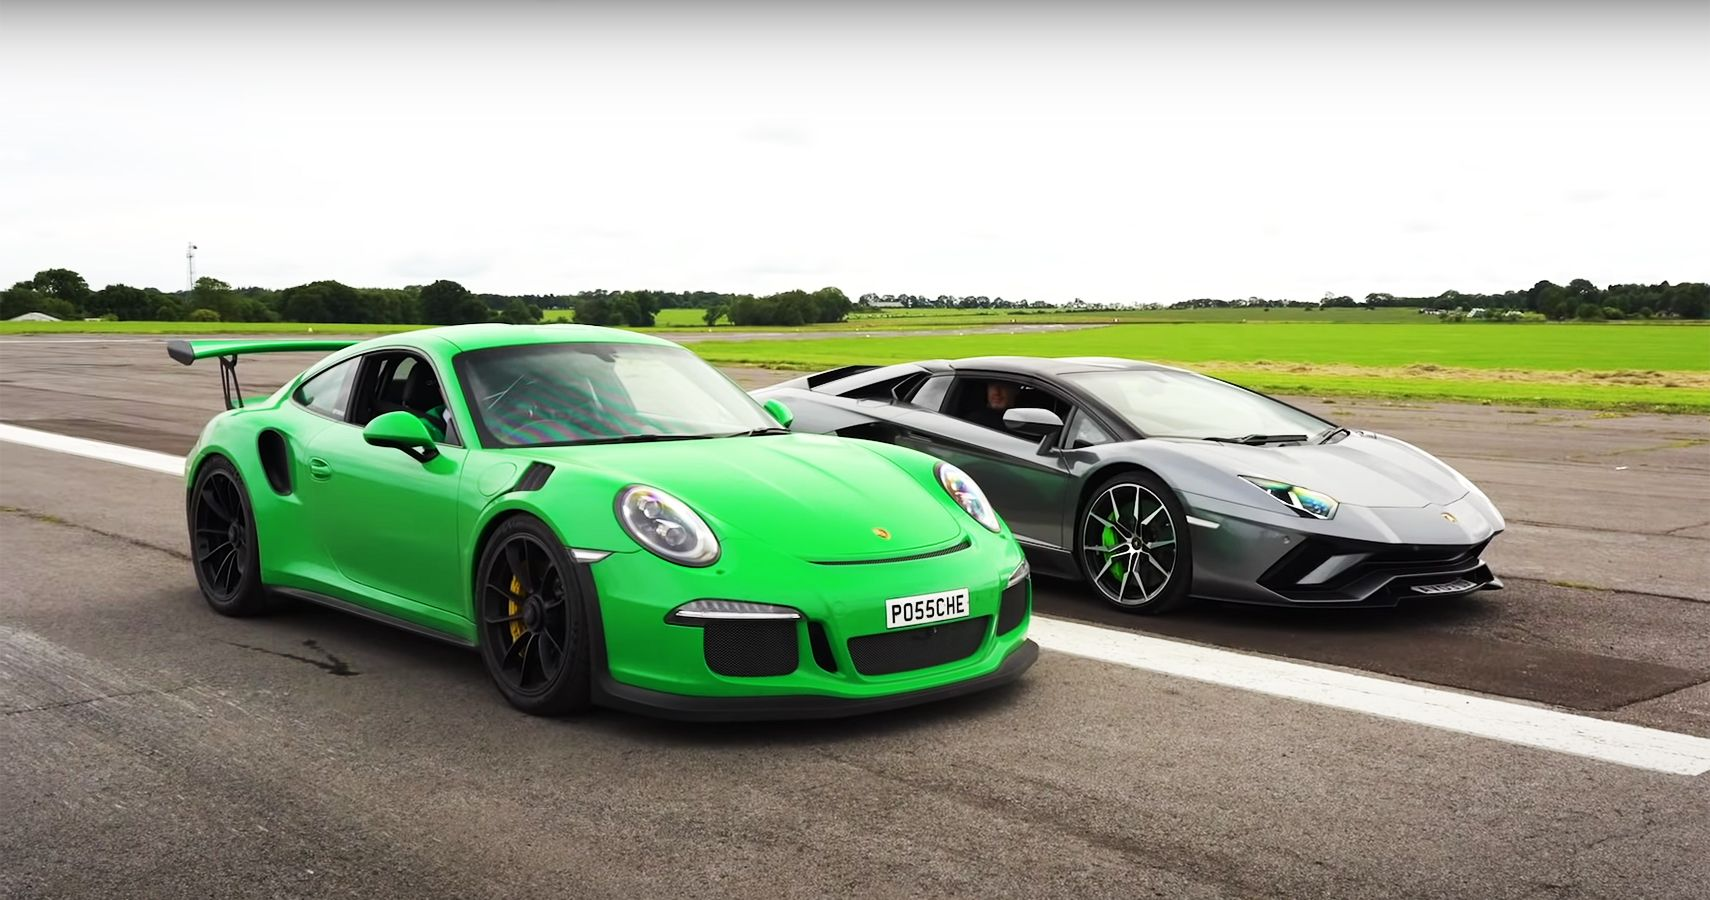 Watch This Porsche 911 GT3 RS Get Left In The Dust In By A Lamborghini Aventador S Roadster